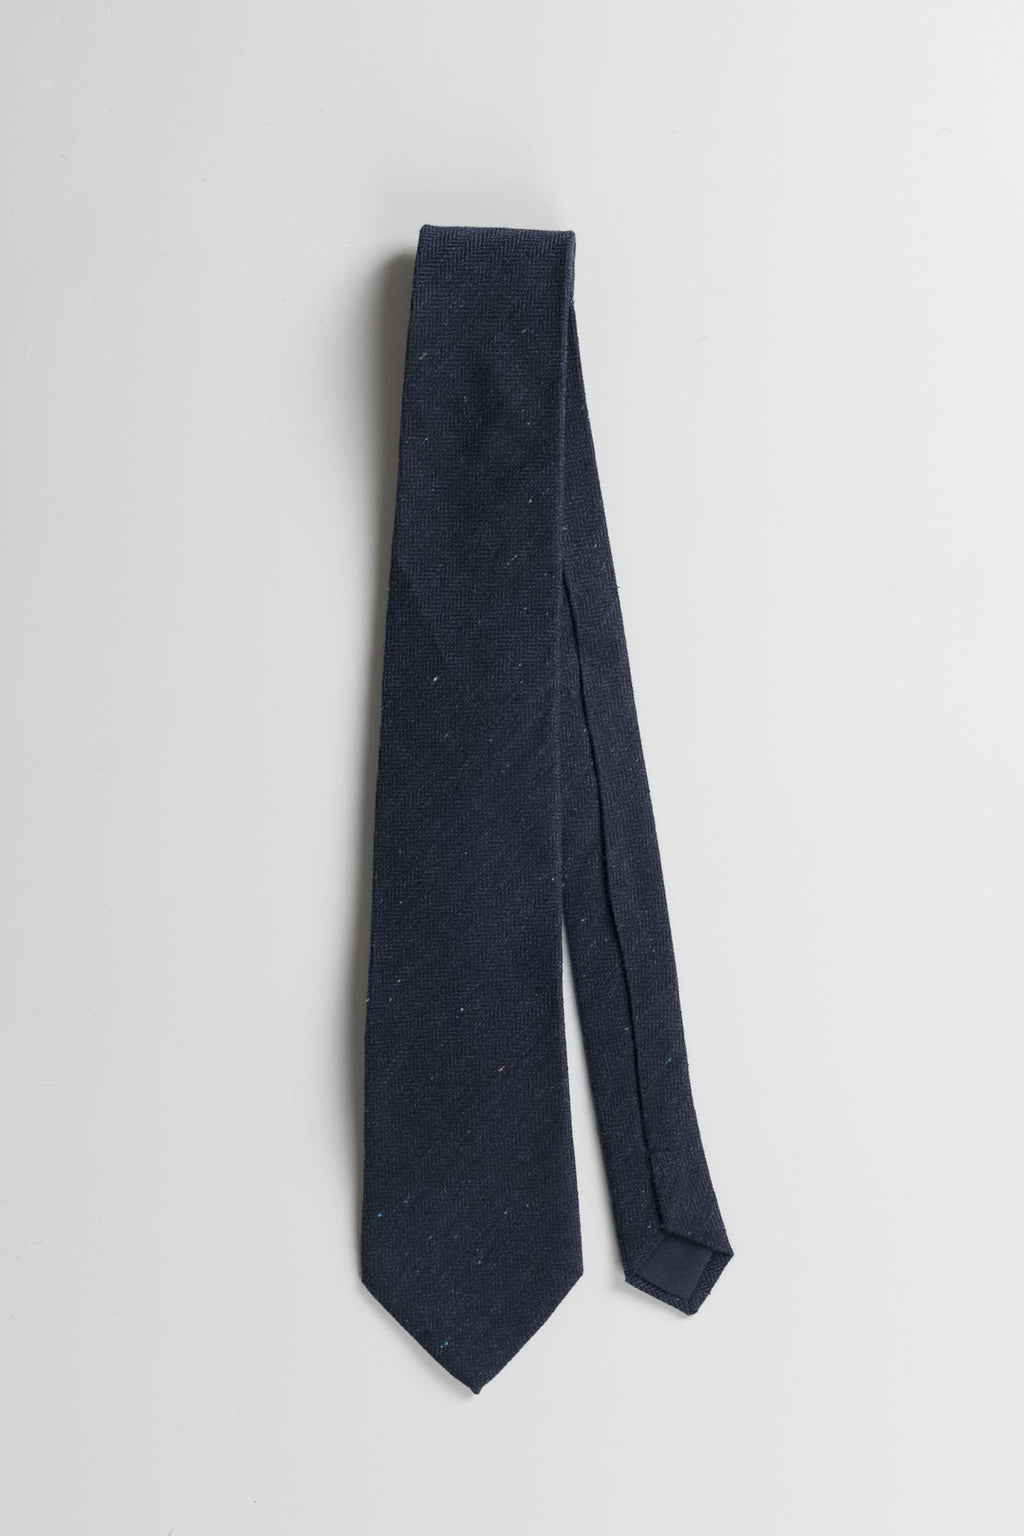 Silk Herringbone Tie in Navy